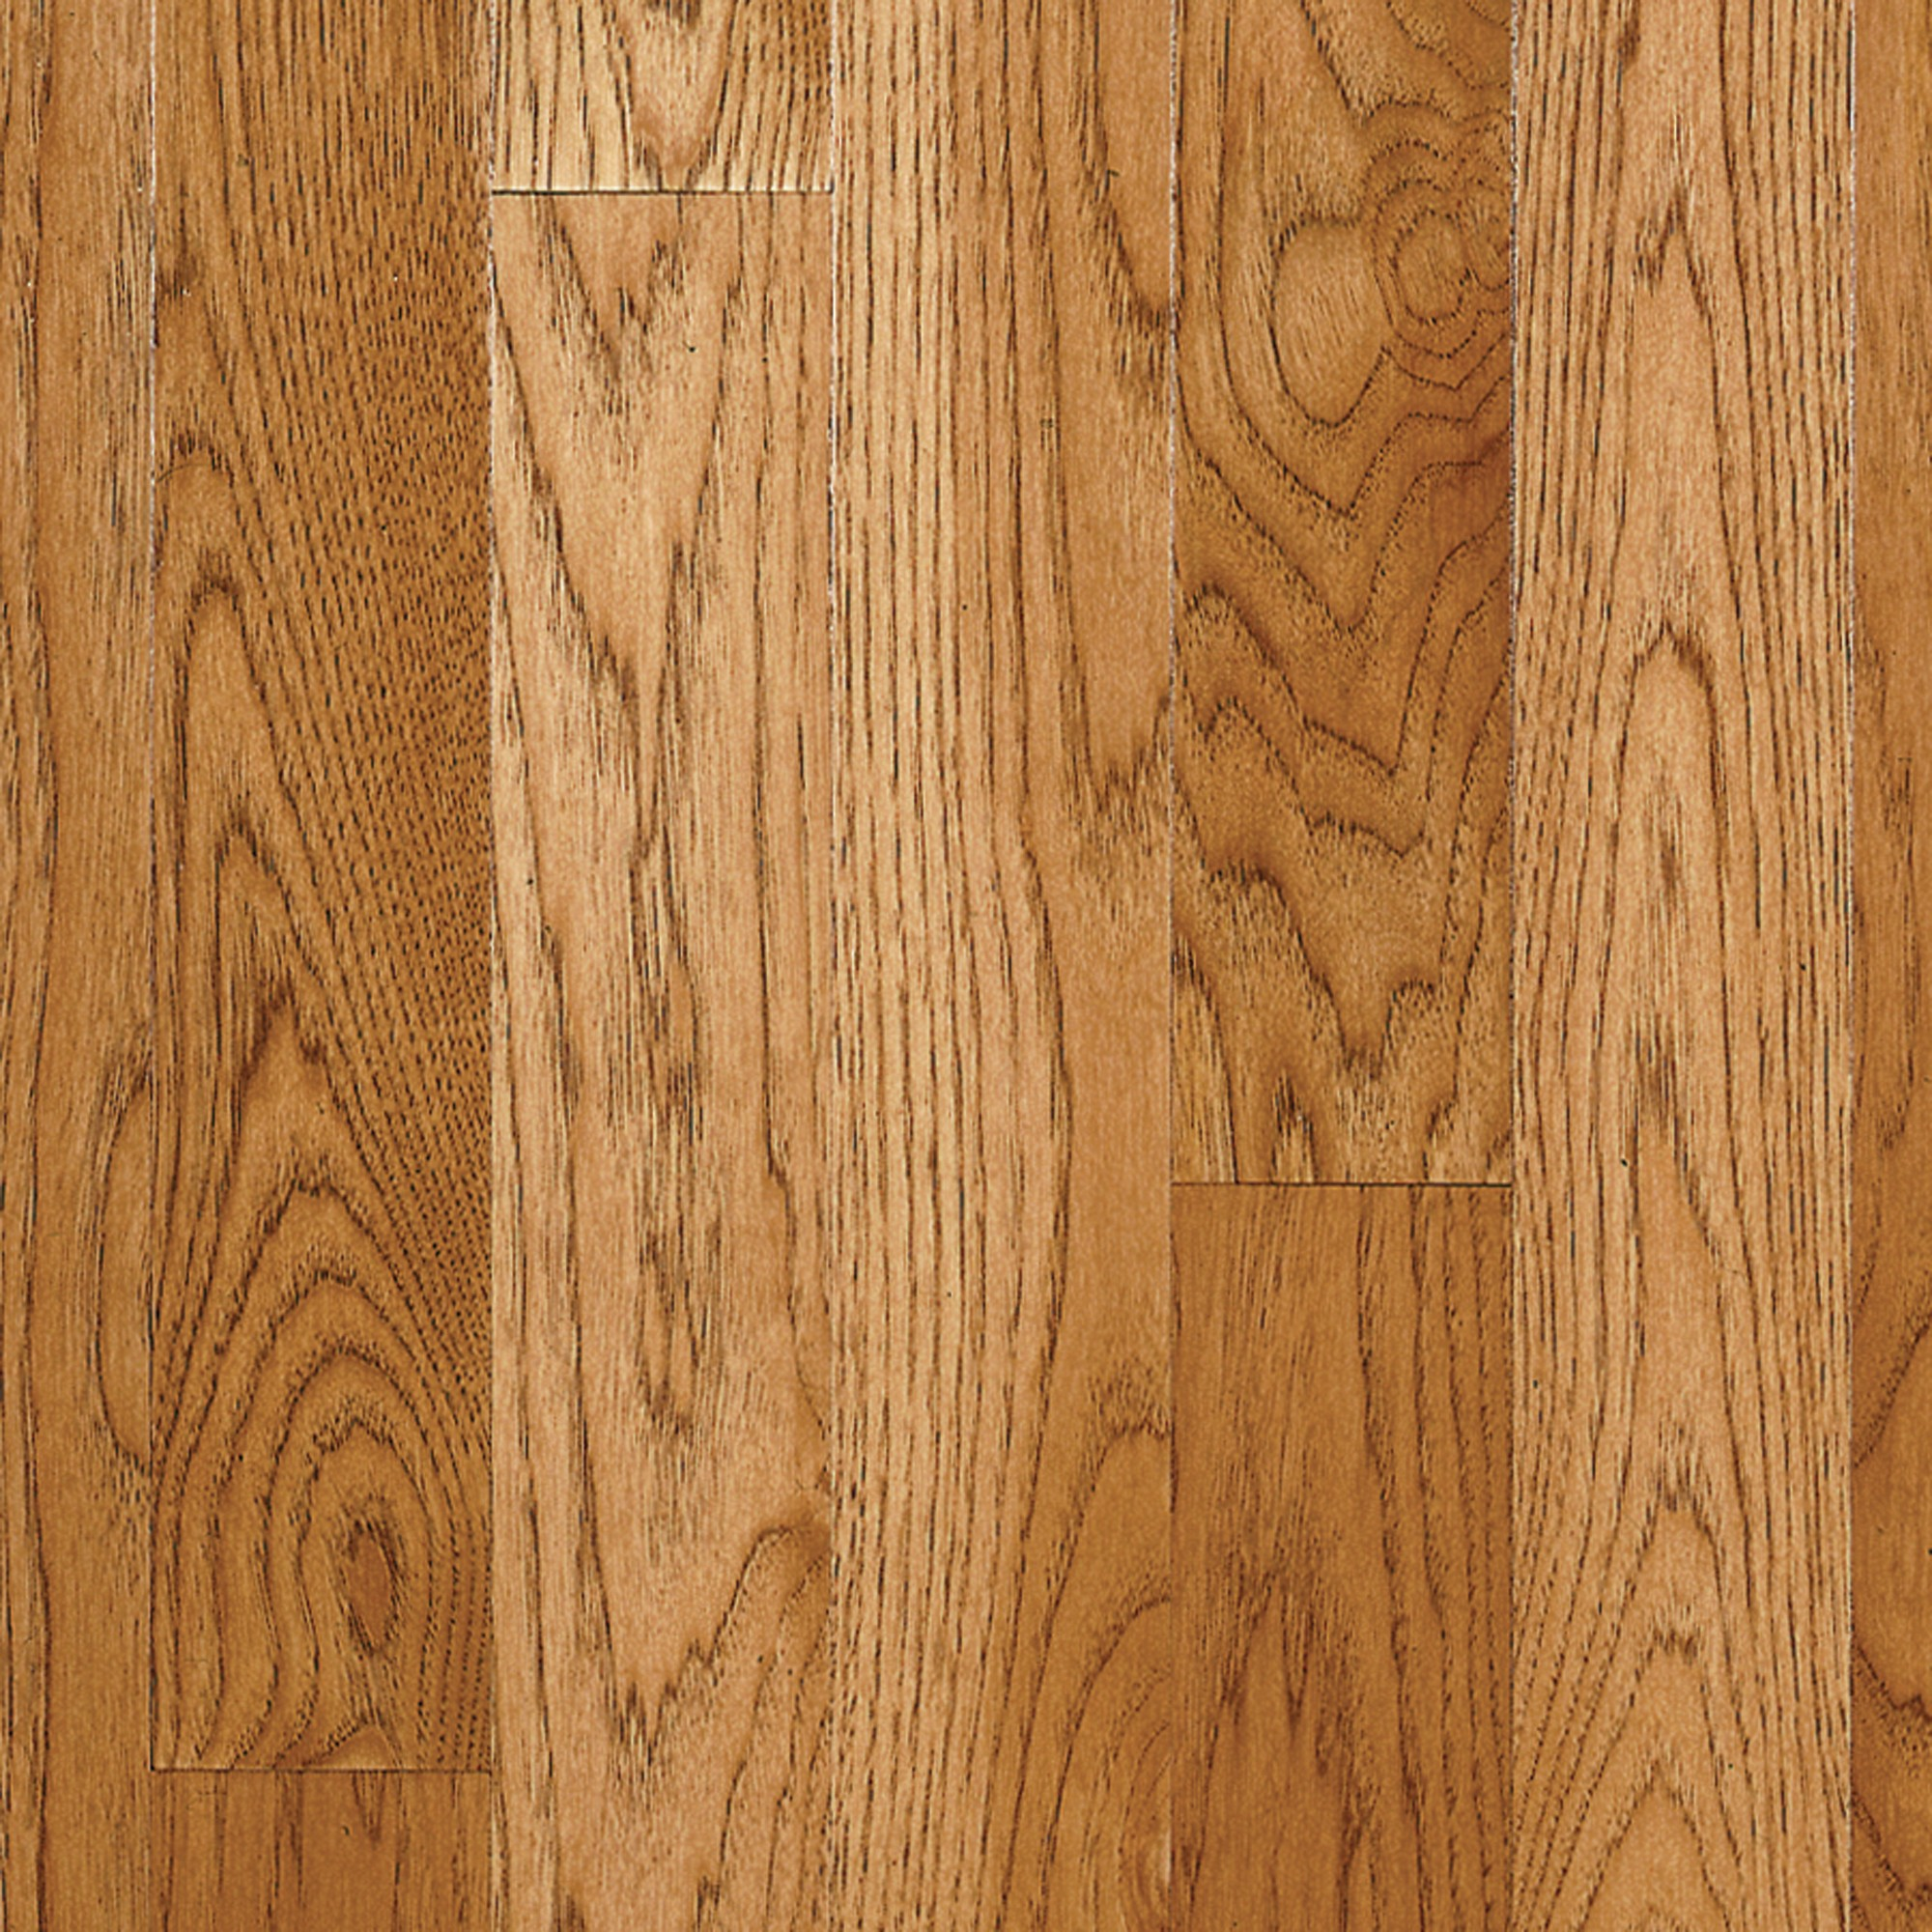 hickory solid sawn character natural floors structured ctn smooth sq ft vintage